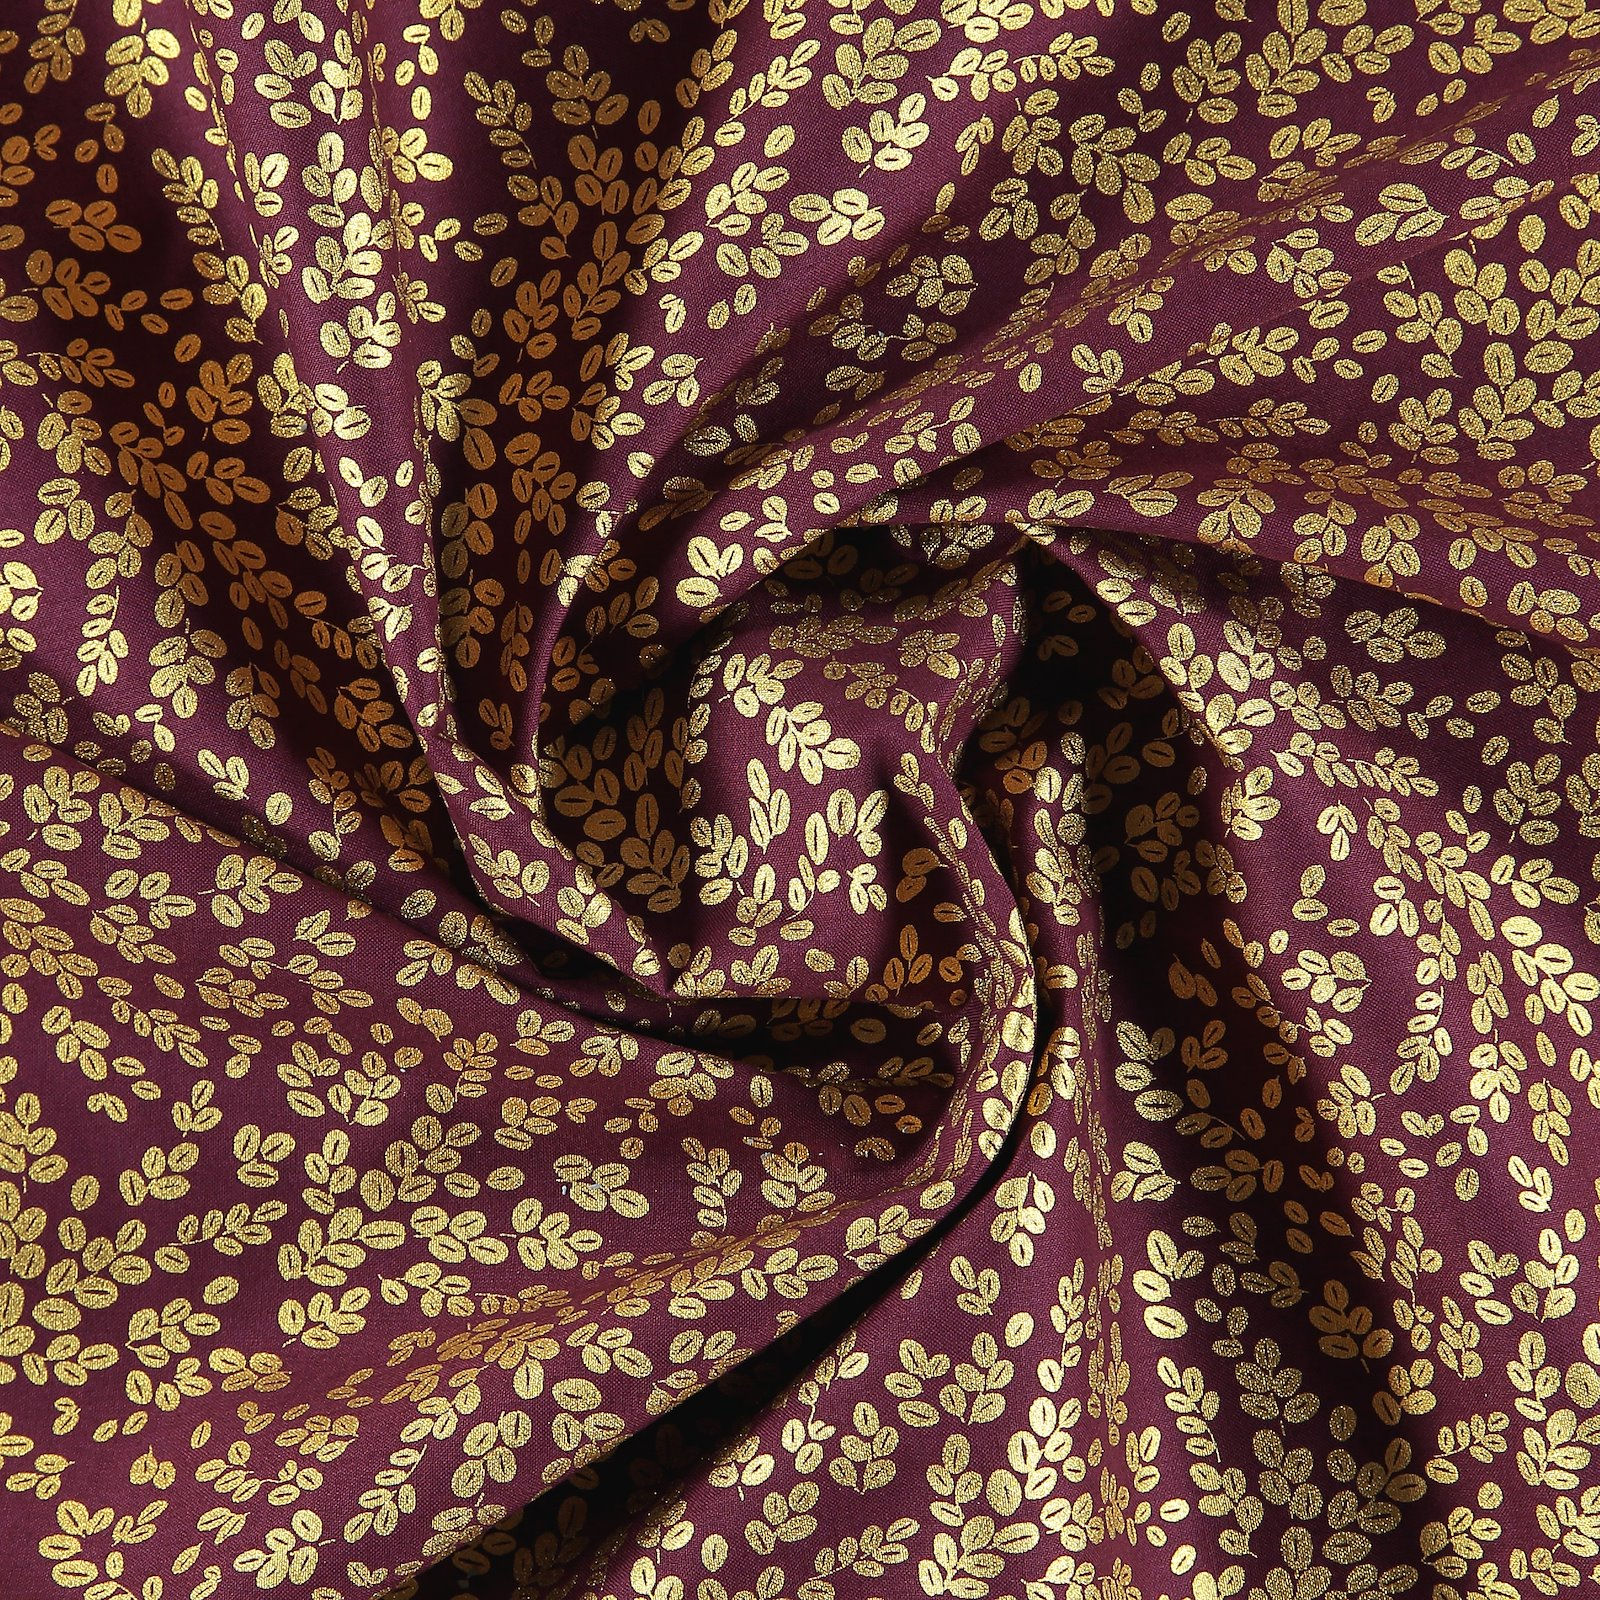 Cotton dark plum with gold leaves 852343_pack